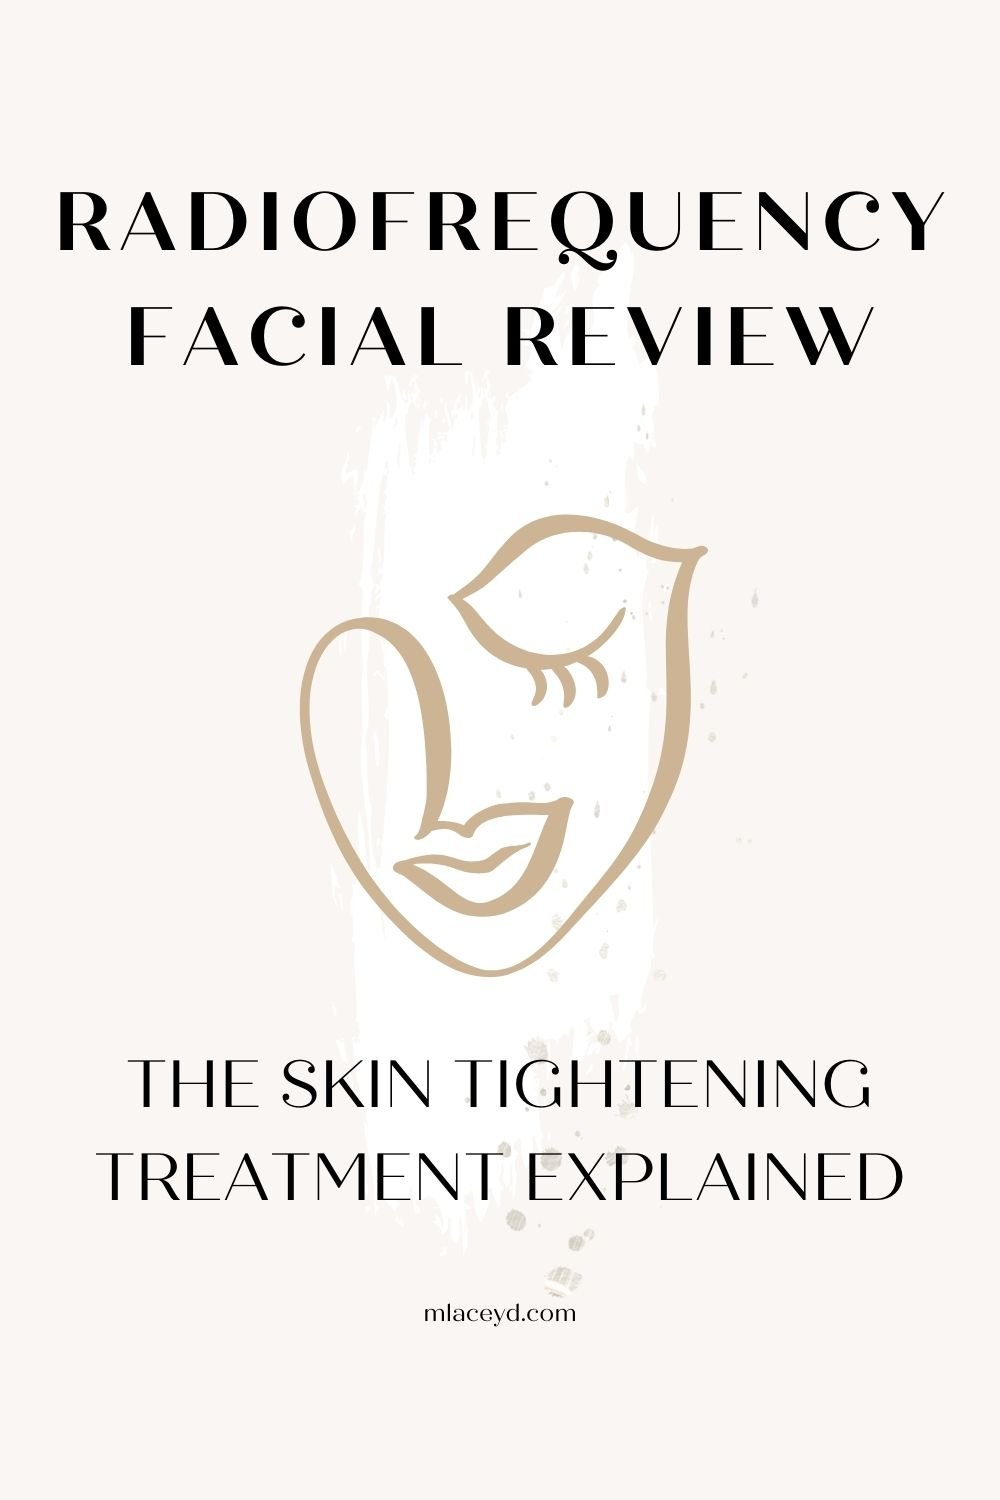 Radio frequency facial for skin tightening